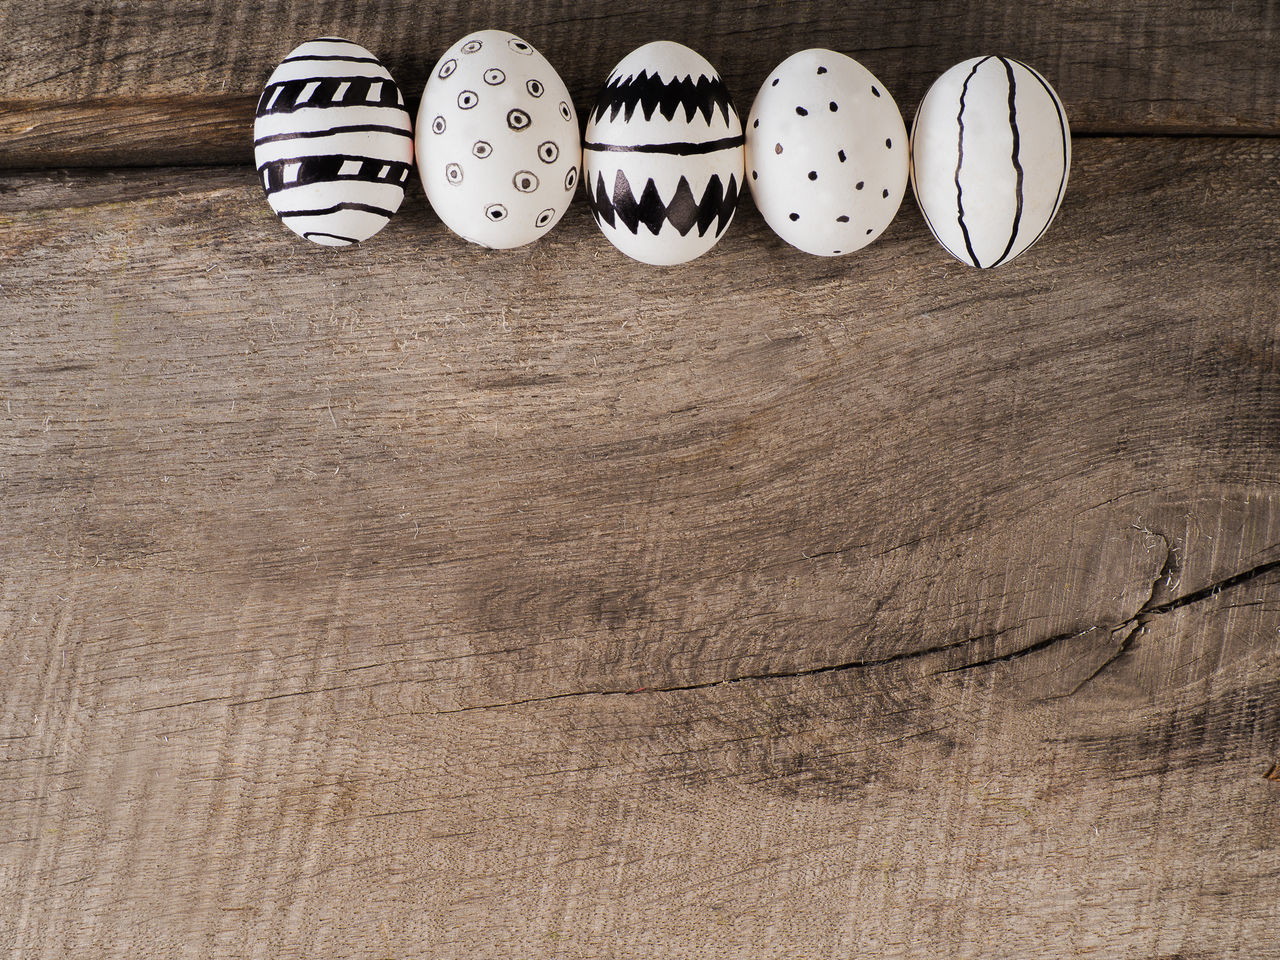 Some easter eggs hand drawn with black ink on a wooden table Backgrounds Black Celebration Celebration Event Creative Creativity Decor Decoration Decorative Do It Yourself Draw Drawn Easter Easter Cards Easter Eggs Easter Greetings Eggs Ideas Ink Painted Selfmade Spring Springtime Wood Woodden